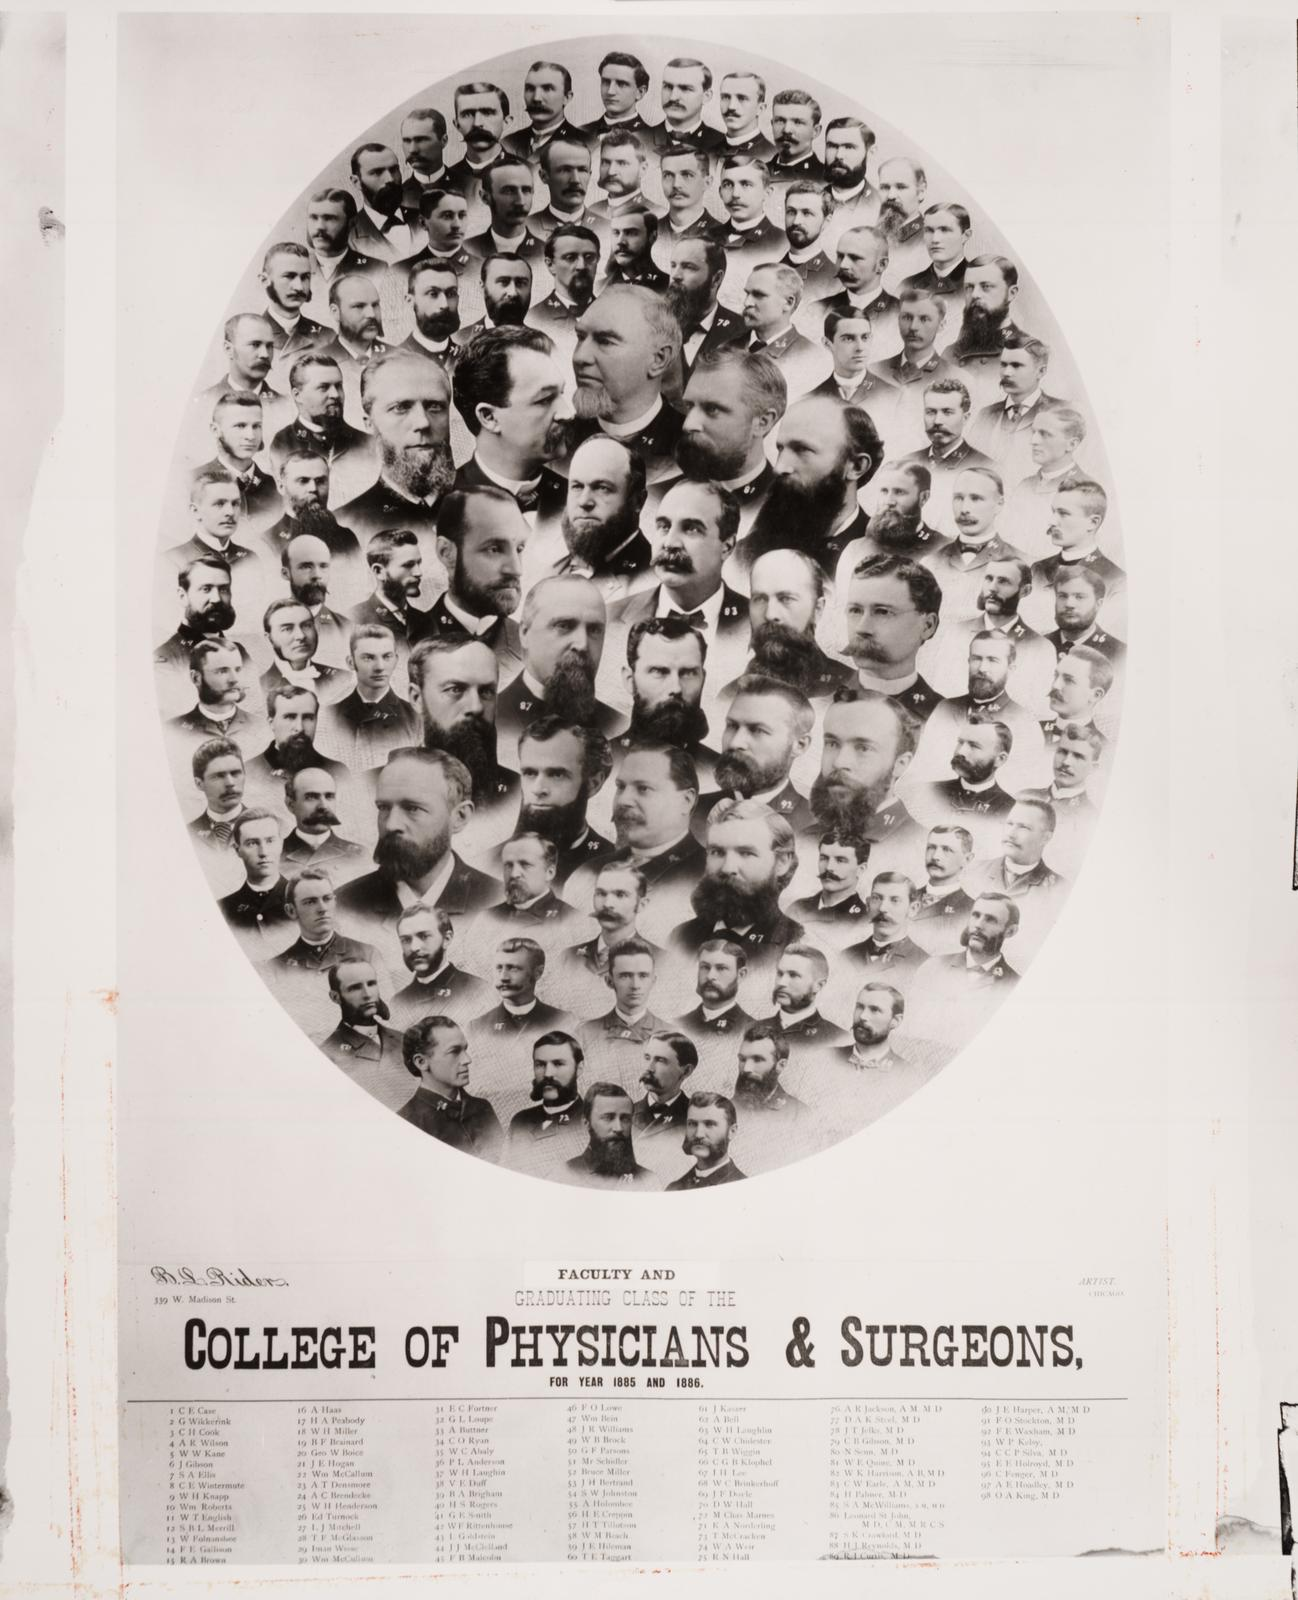 1885/1886 graduating class, University of Illinois College of Medicine